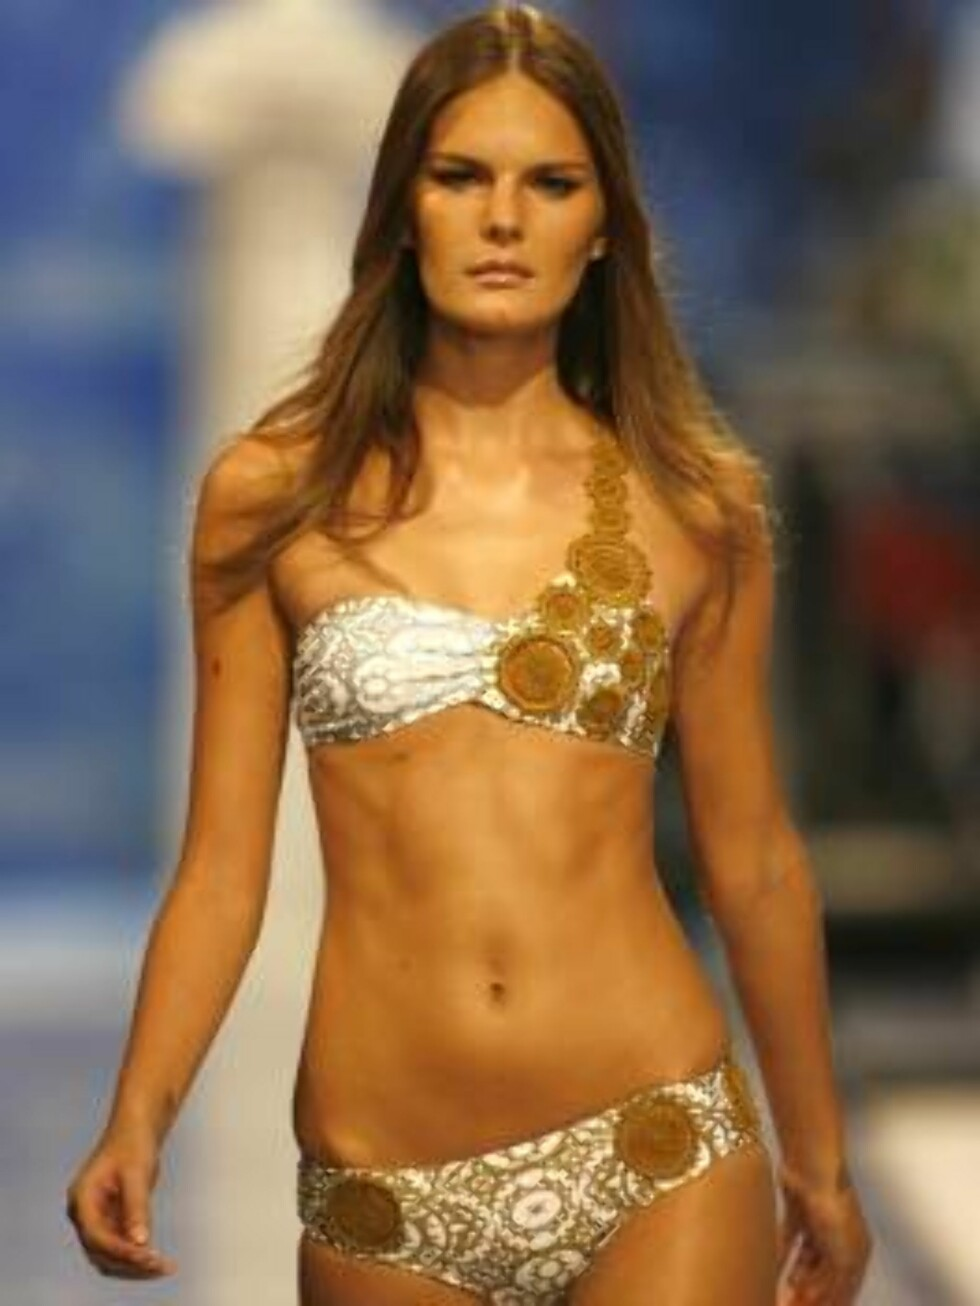 A model shows a design of  Agua de Coco's collection during the Sao Paulo Fashion Week in Sao Paulo, Brazil, Friday, July 14, 2006. (AP Photo/Andre Penner) Foto: AP